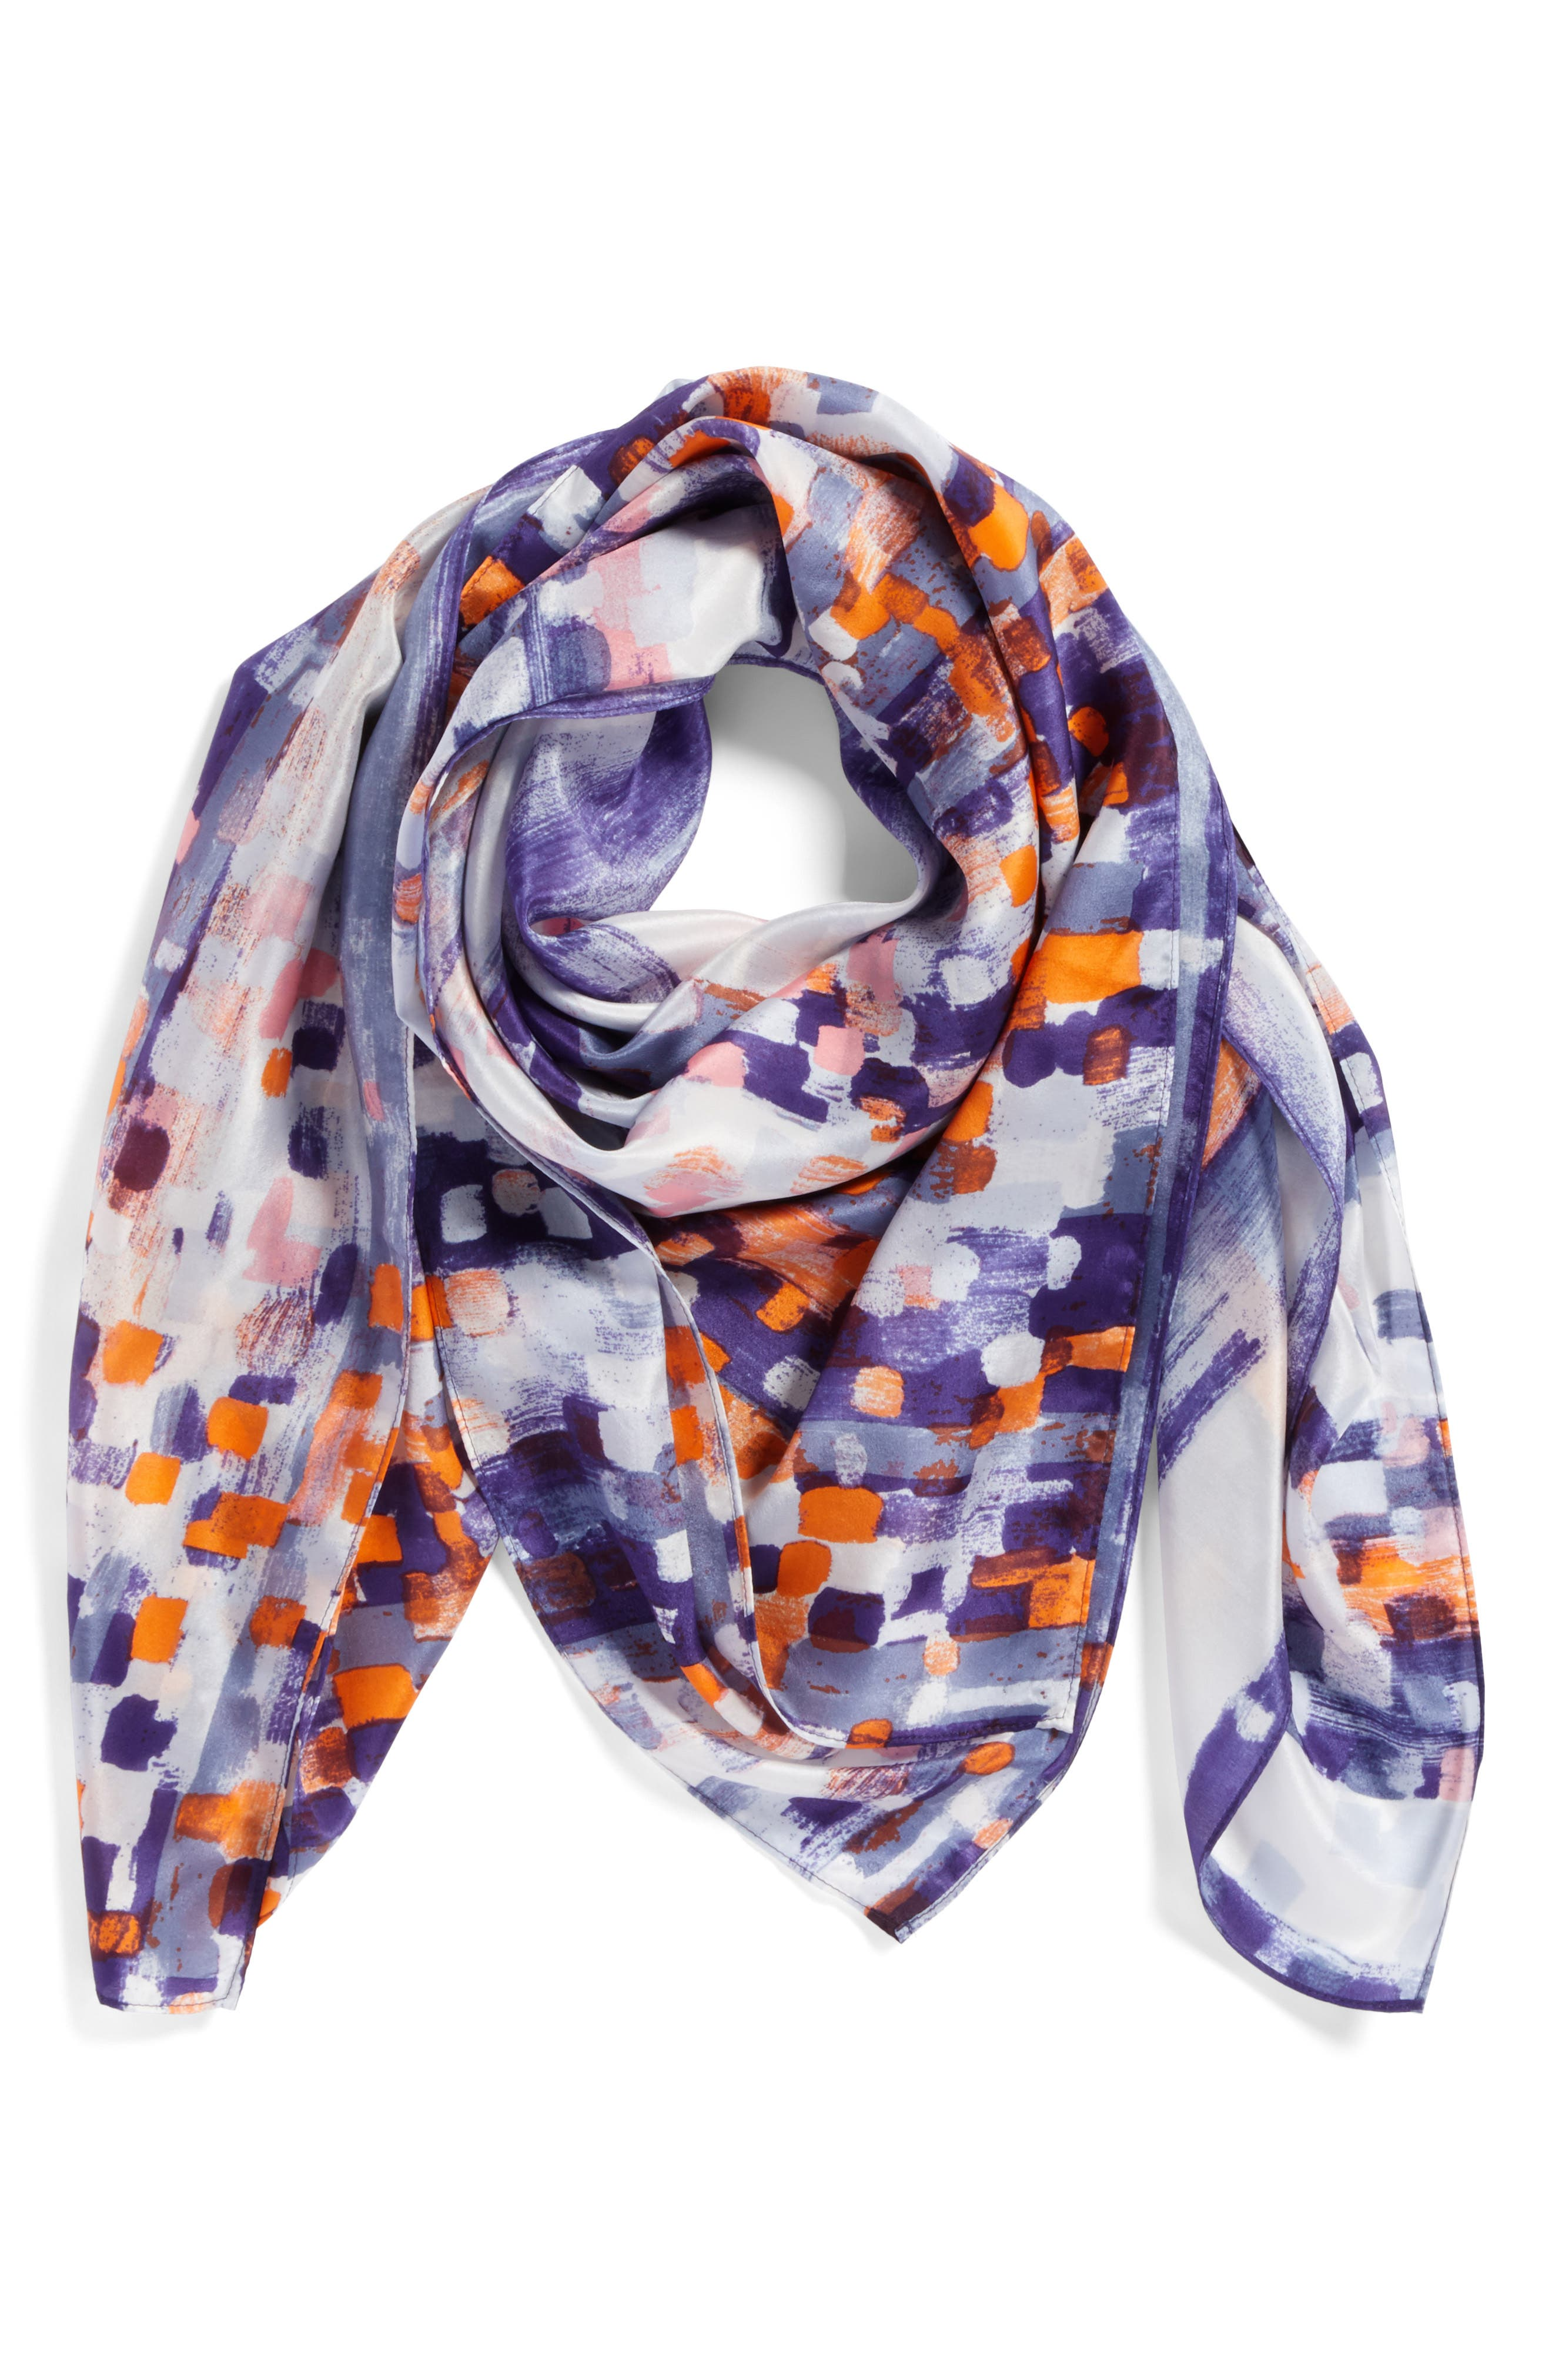 Print Silk Square Scarf,                             Alternate thumbnail 2, color,                             Blue Abstract Ombre Print